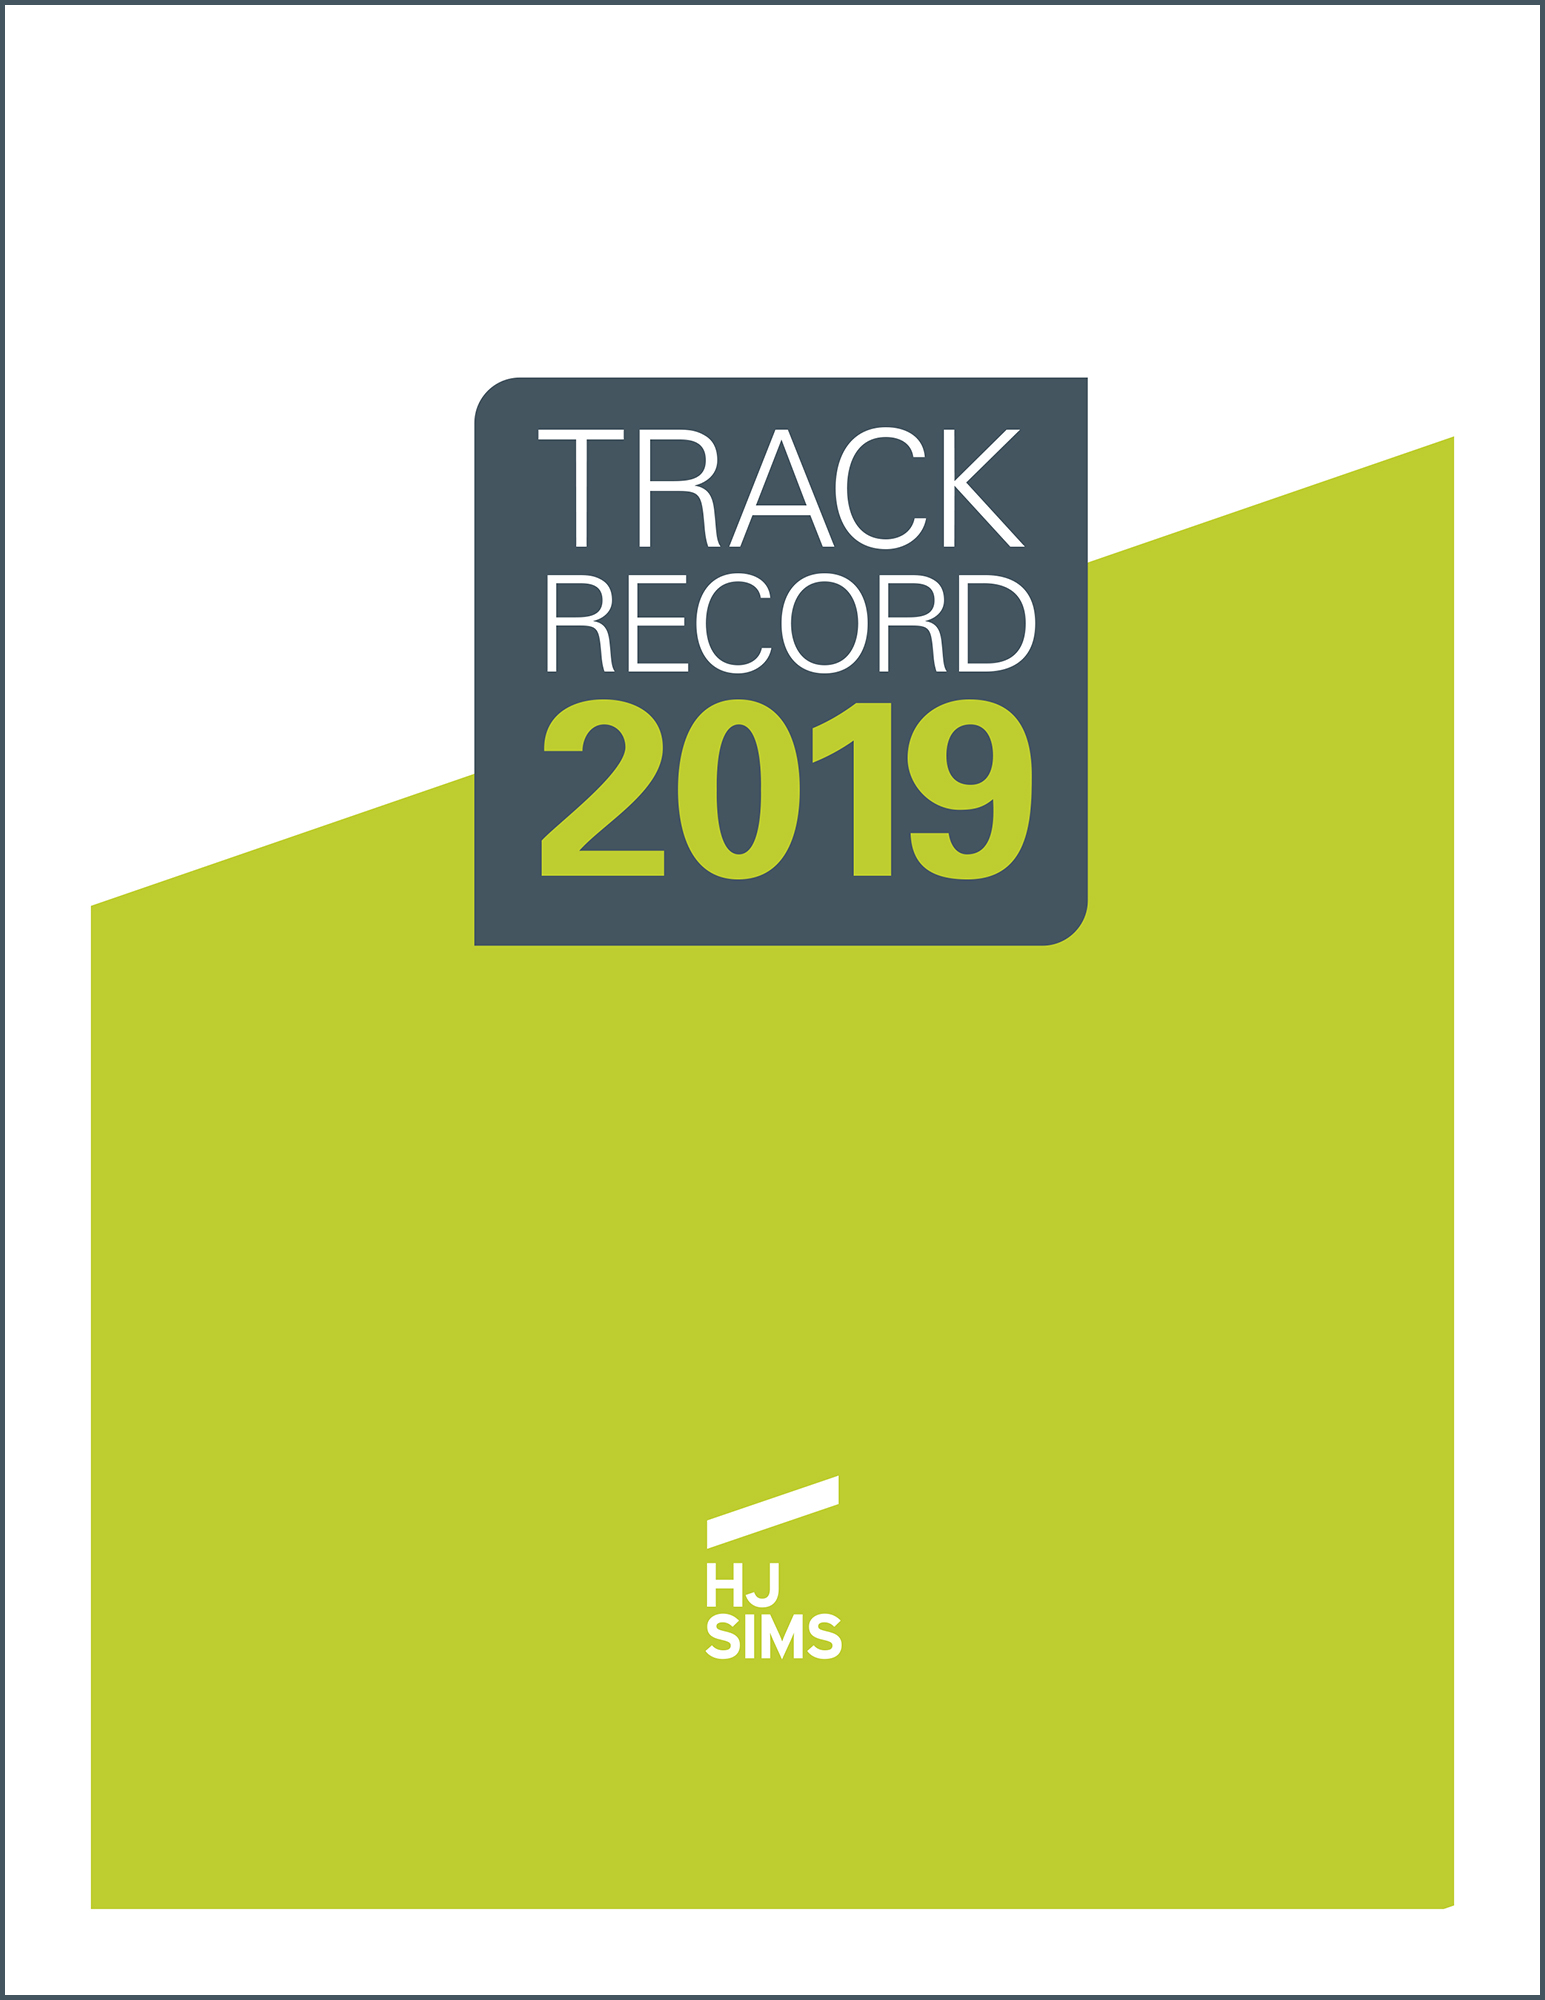 HJ Sims 2019 Track Record